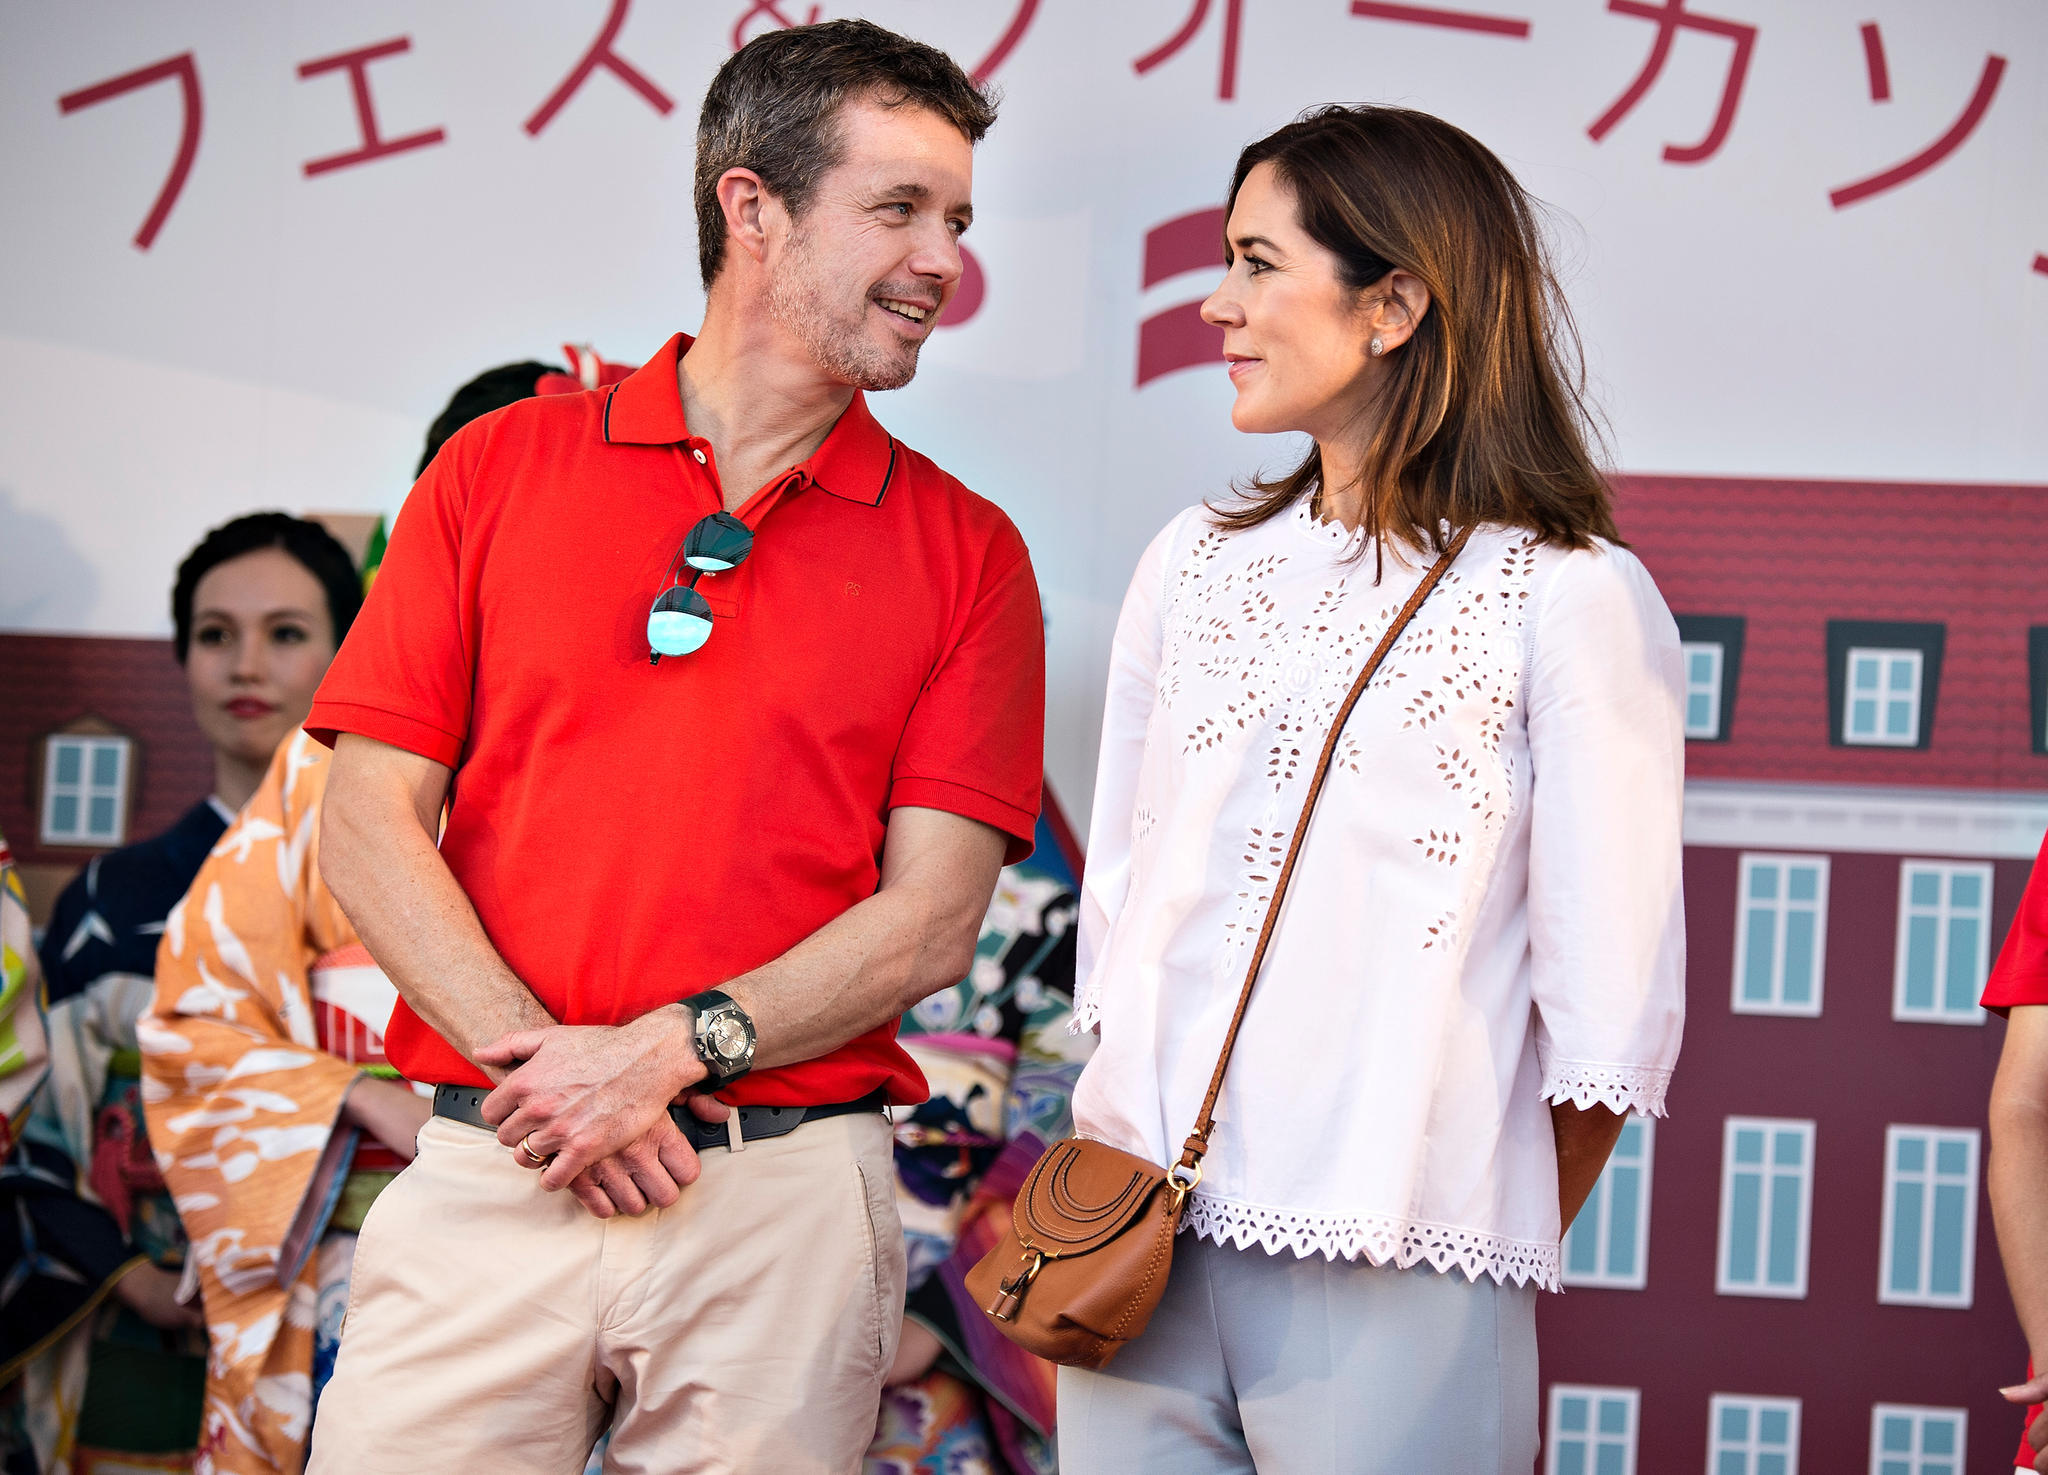 Prinz Frederik und Prinzessin Mary am 8. Oktober 2017 in Japan